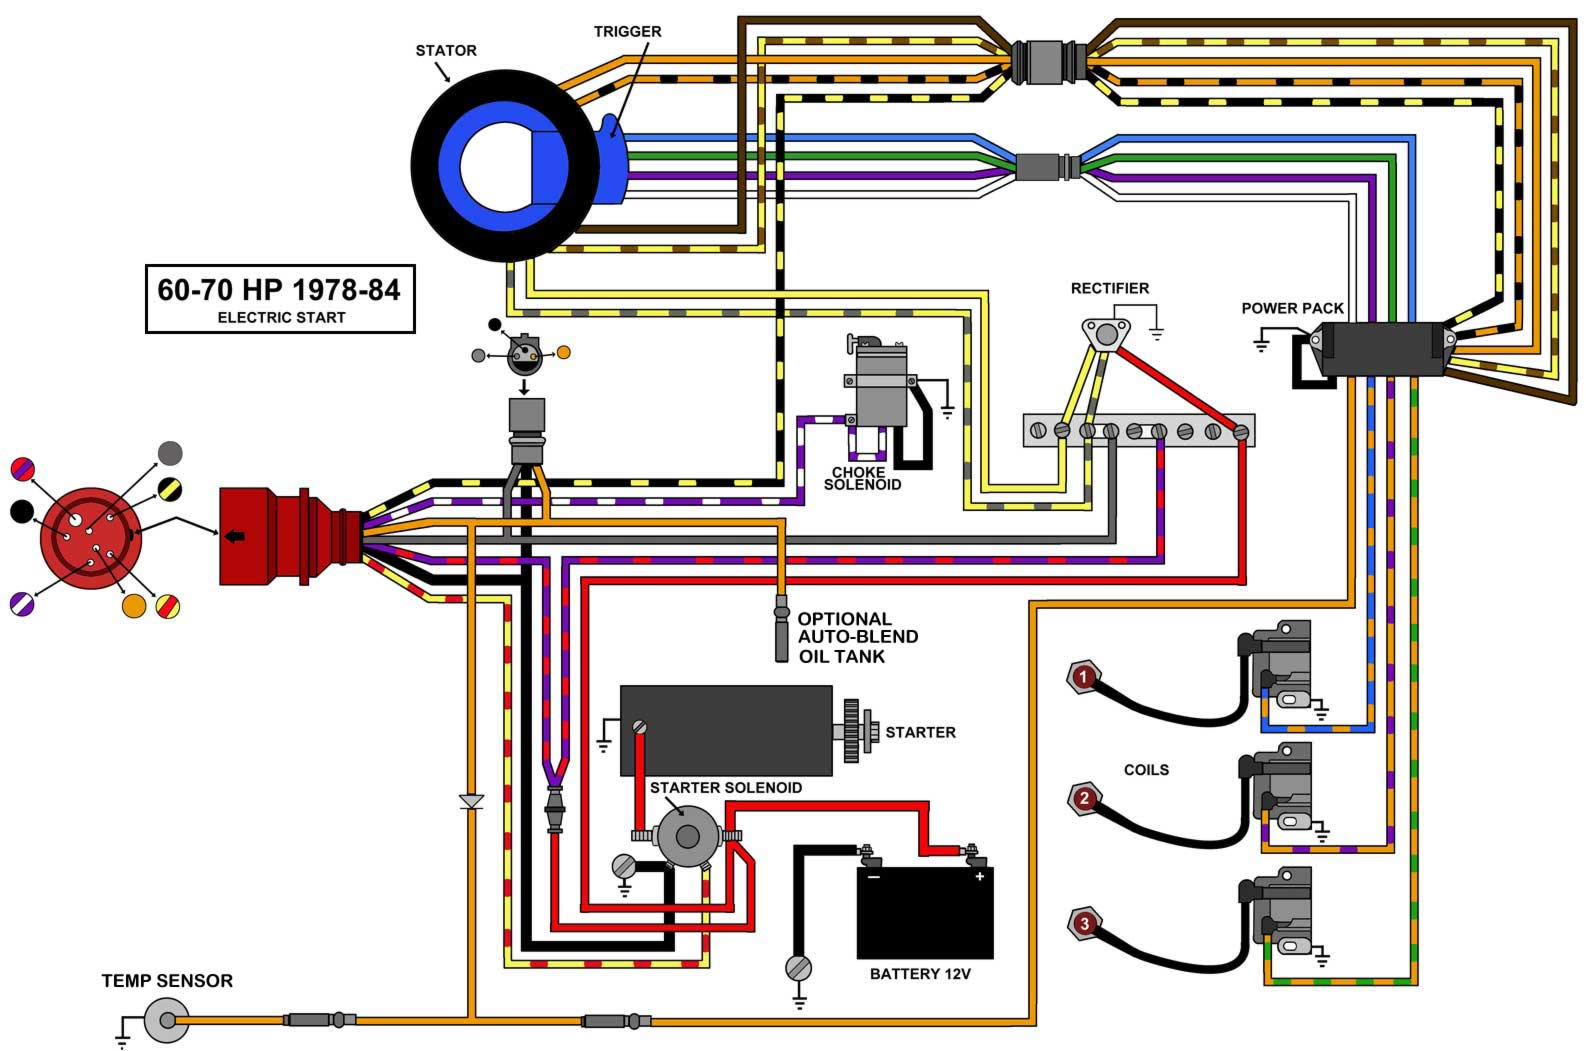 wiring tach from johnson controls page iboats boating forums here s a diagram that shows a typical tilt trim system